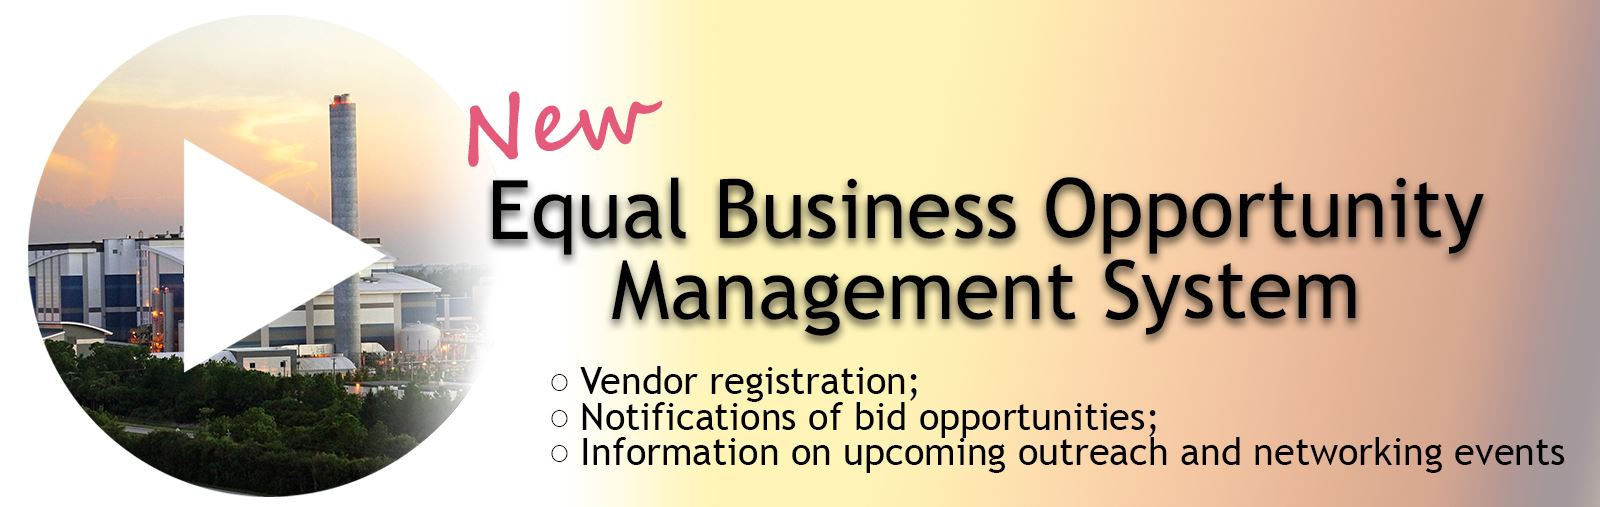 Equal Business Opportunity Management System